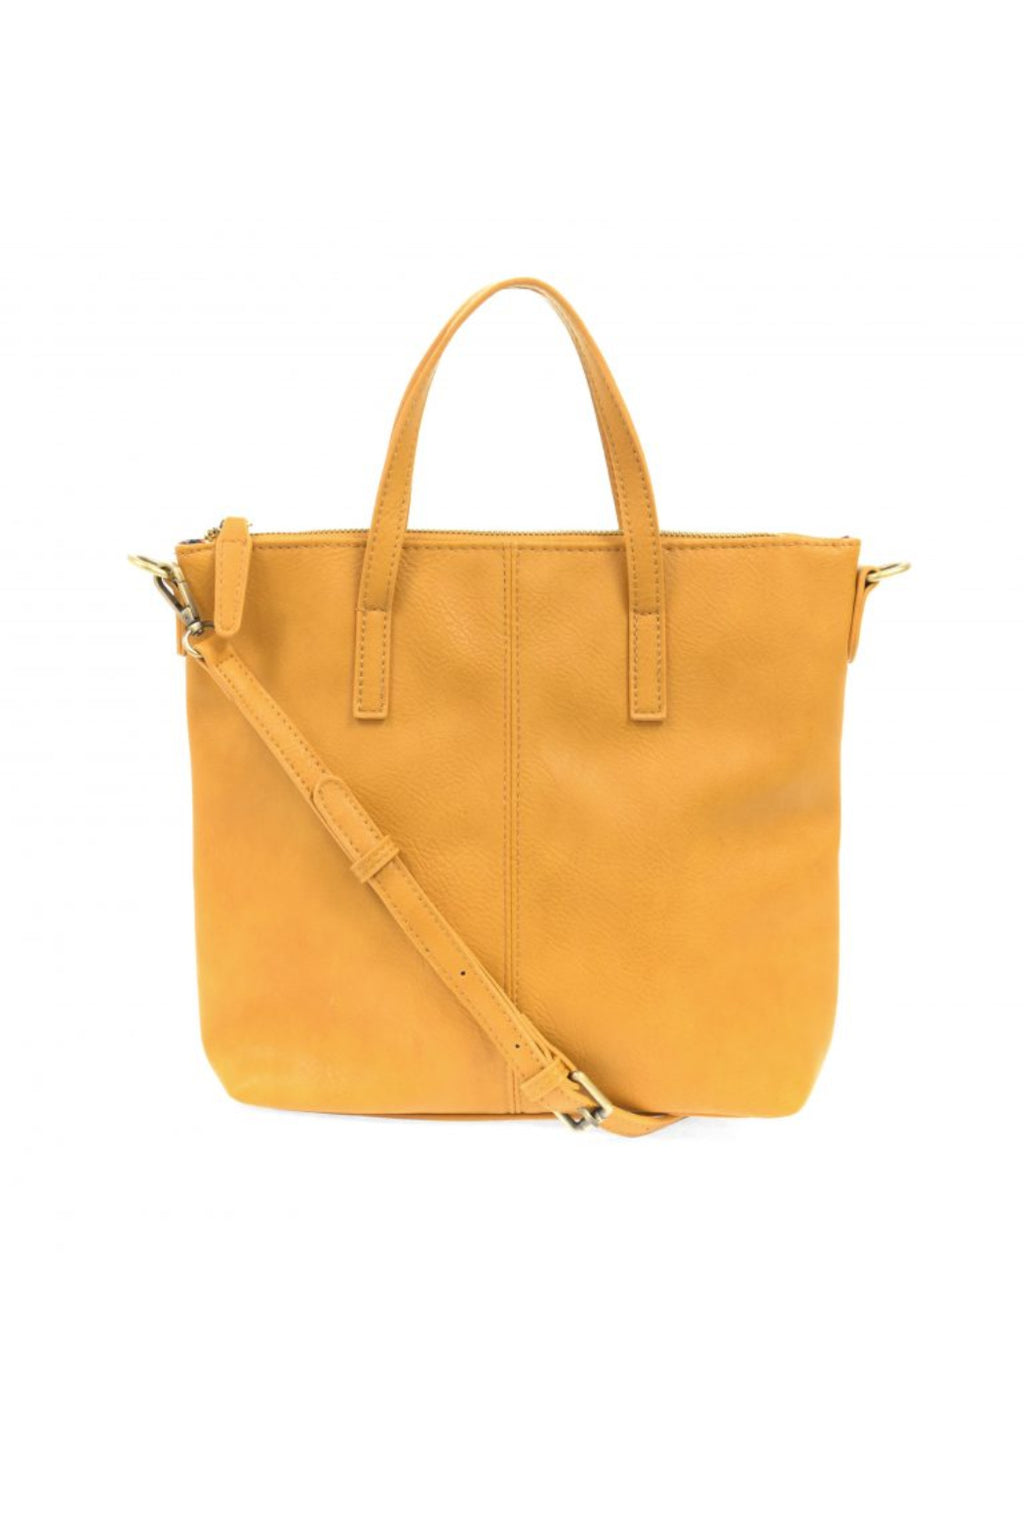 Joy Susan Kim Top Zip Tote - Amber